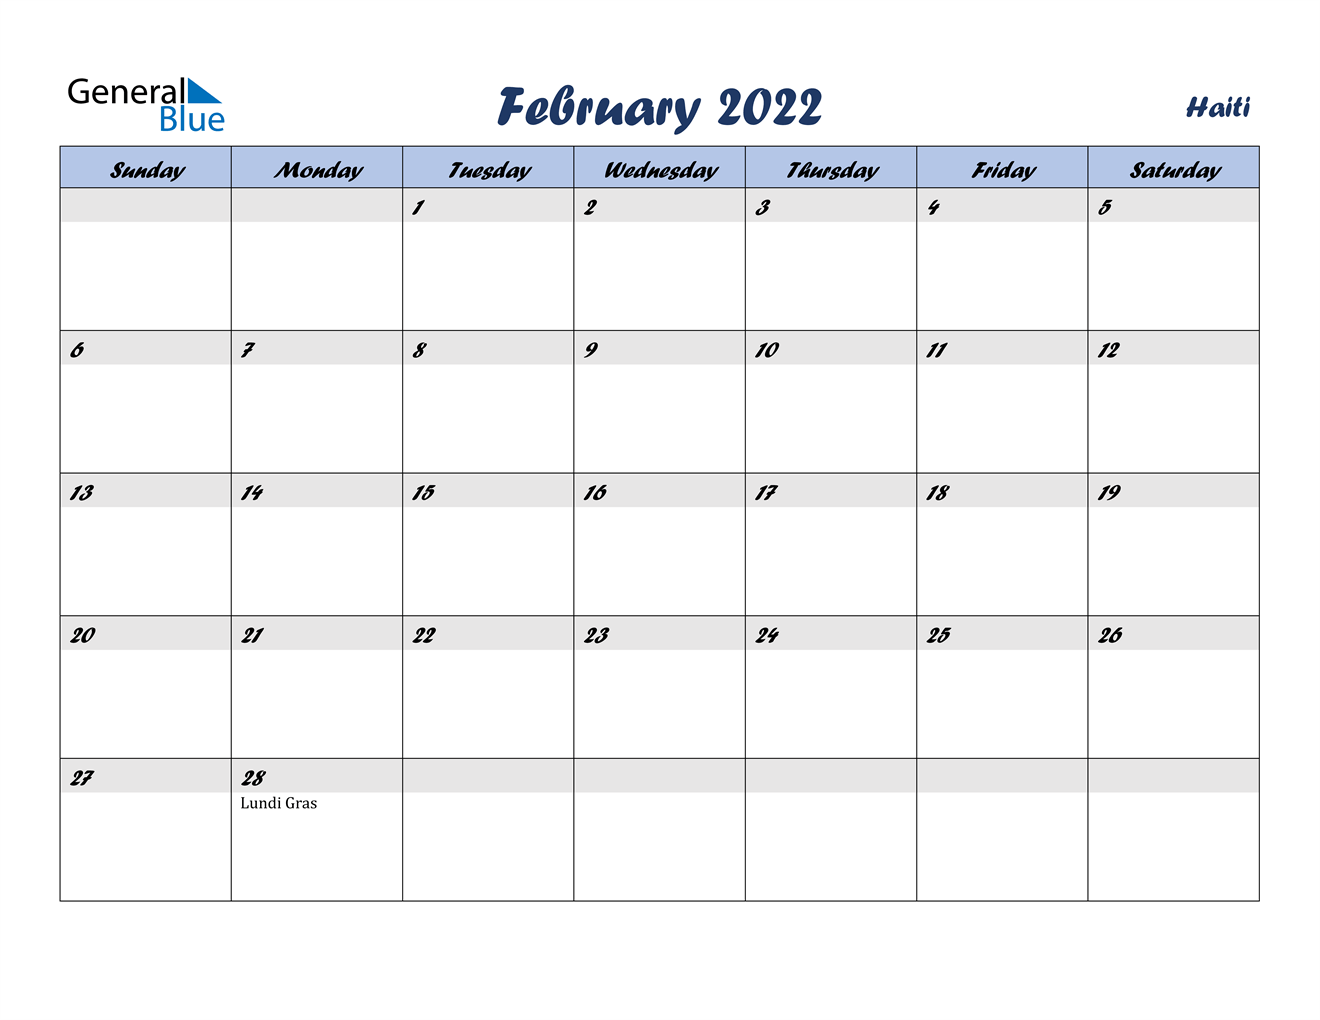 Remembering to pay your bills each month isn't always easy, especially when your bills are d. February 2022 Calendar - Haiti